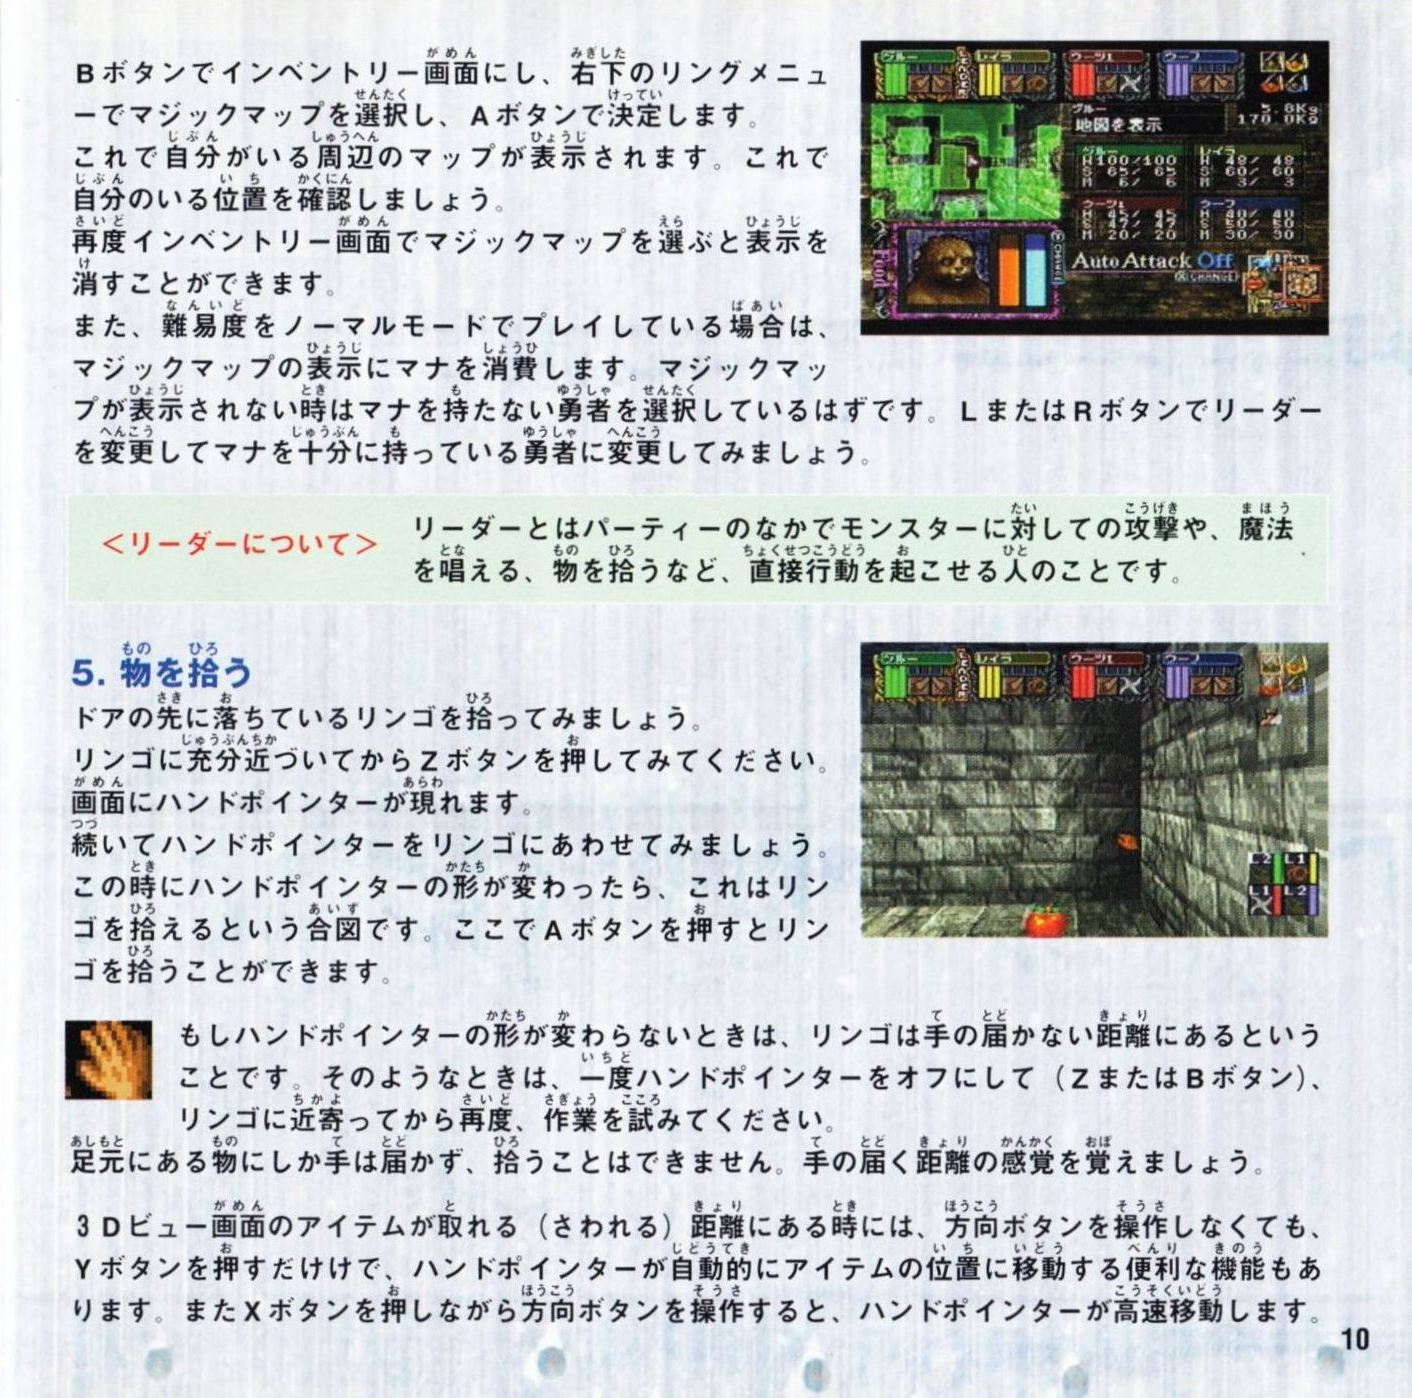 Game - Dungeon Master Nexus - JP - Sega Saturn - Booklet - Page 011 - Scan